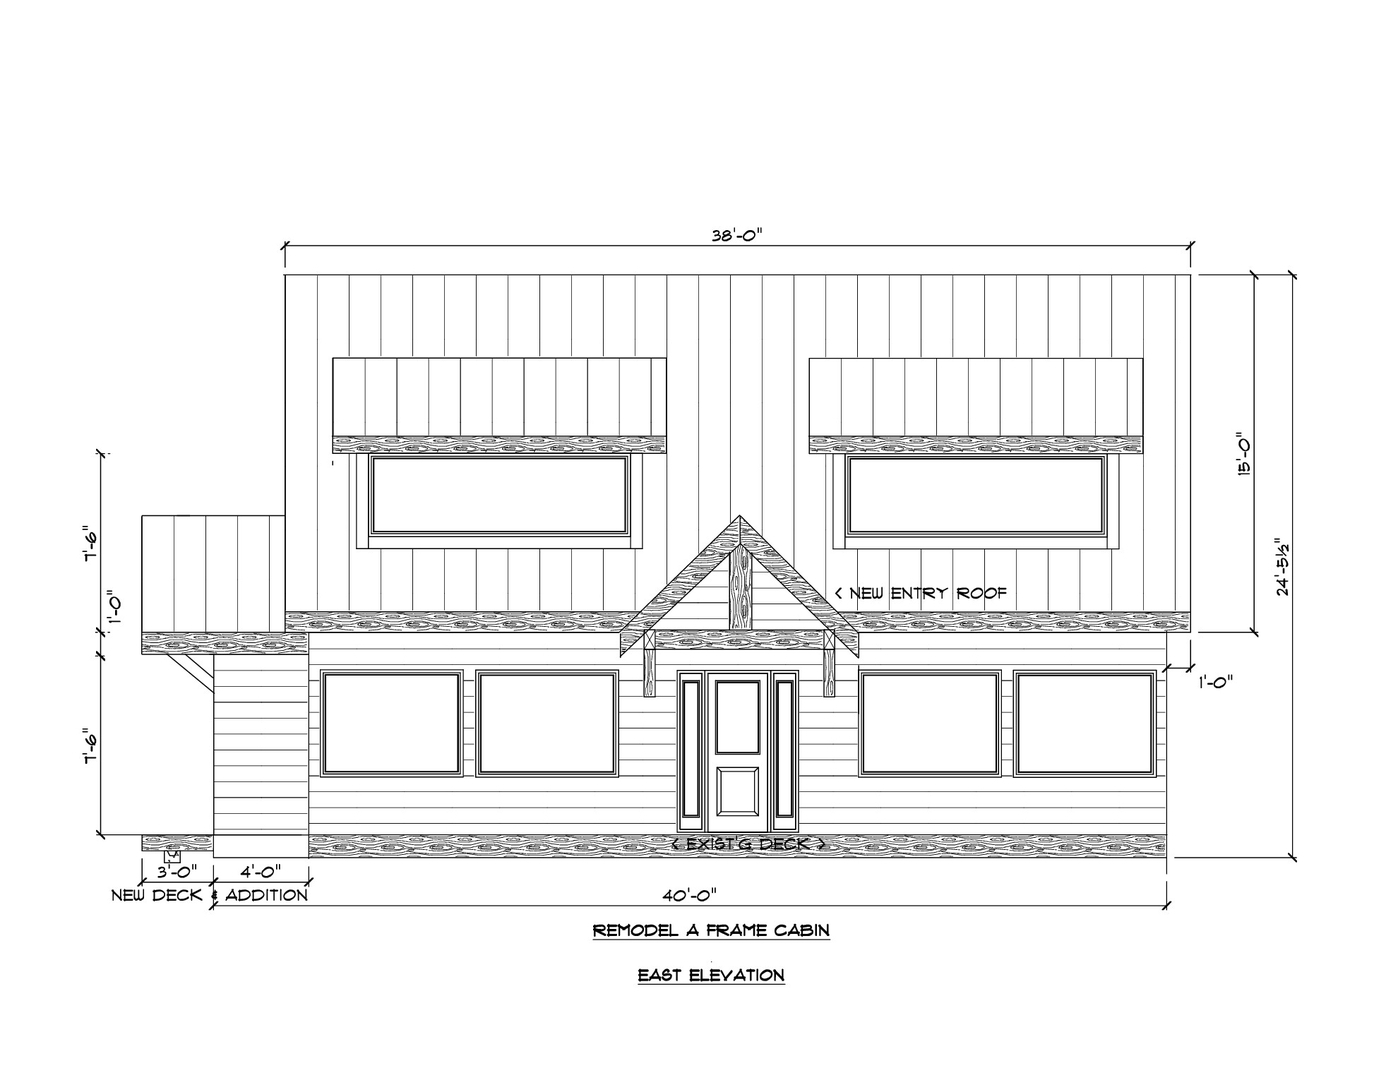 A Frame Cabin Remodel - Home design and Drafting on San Juan Island